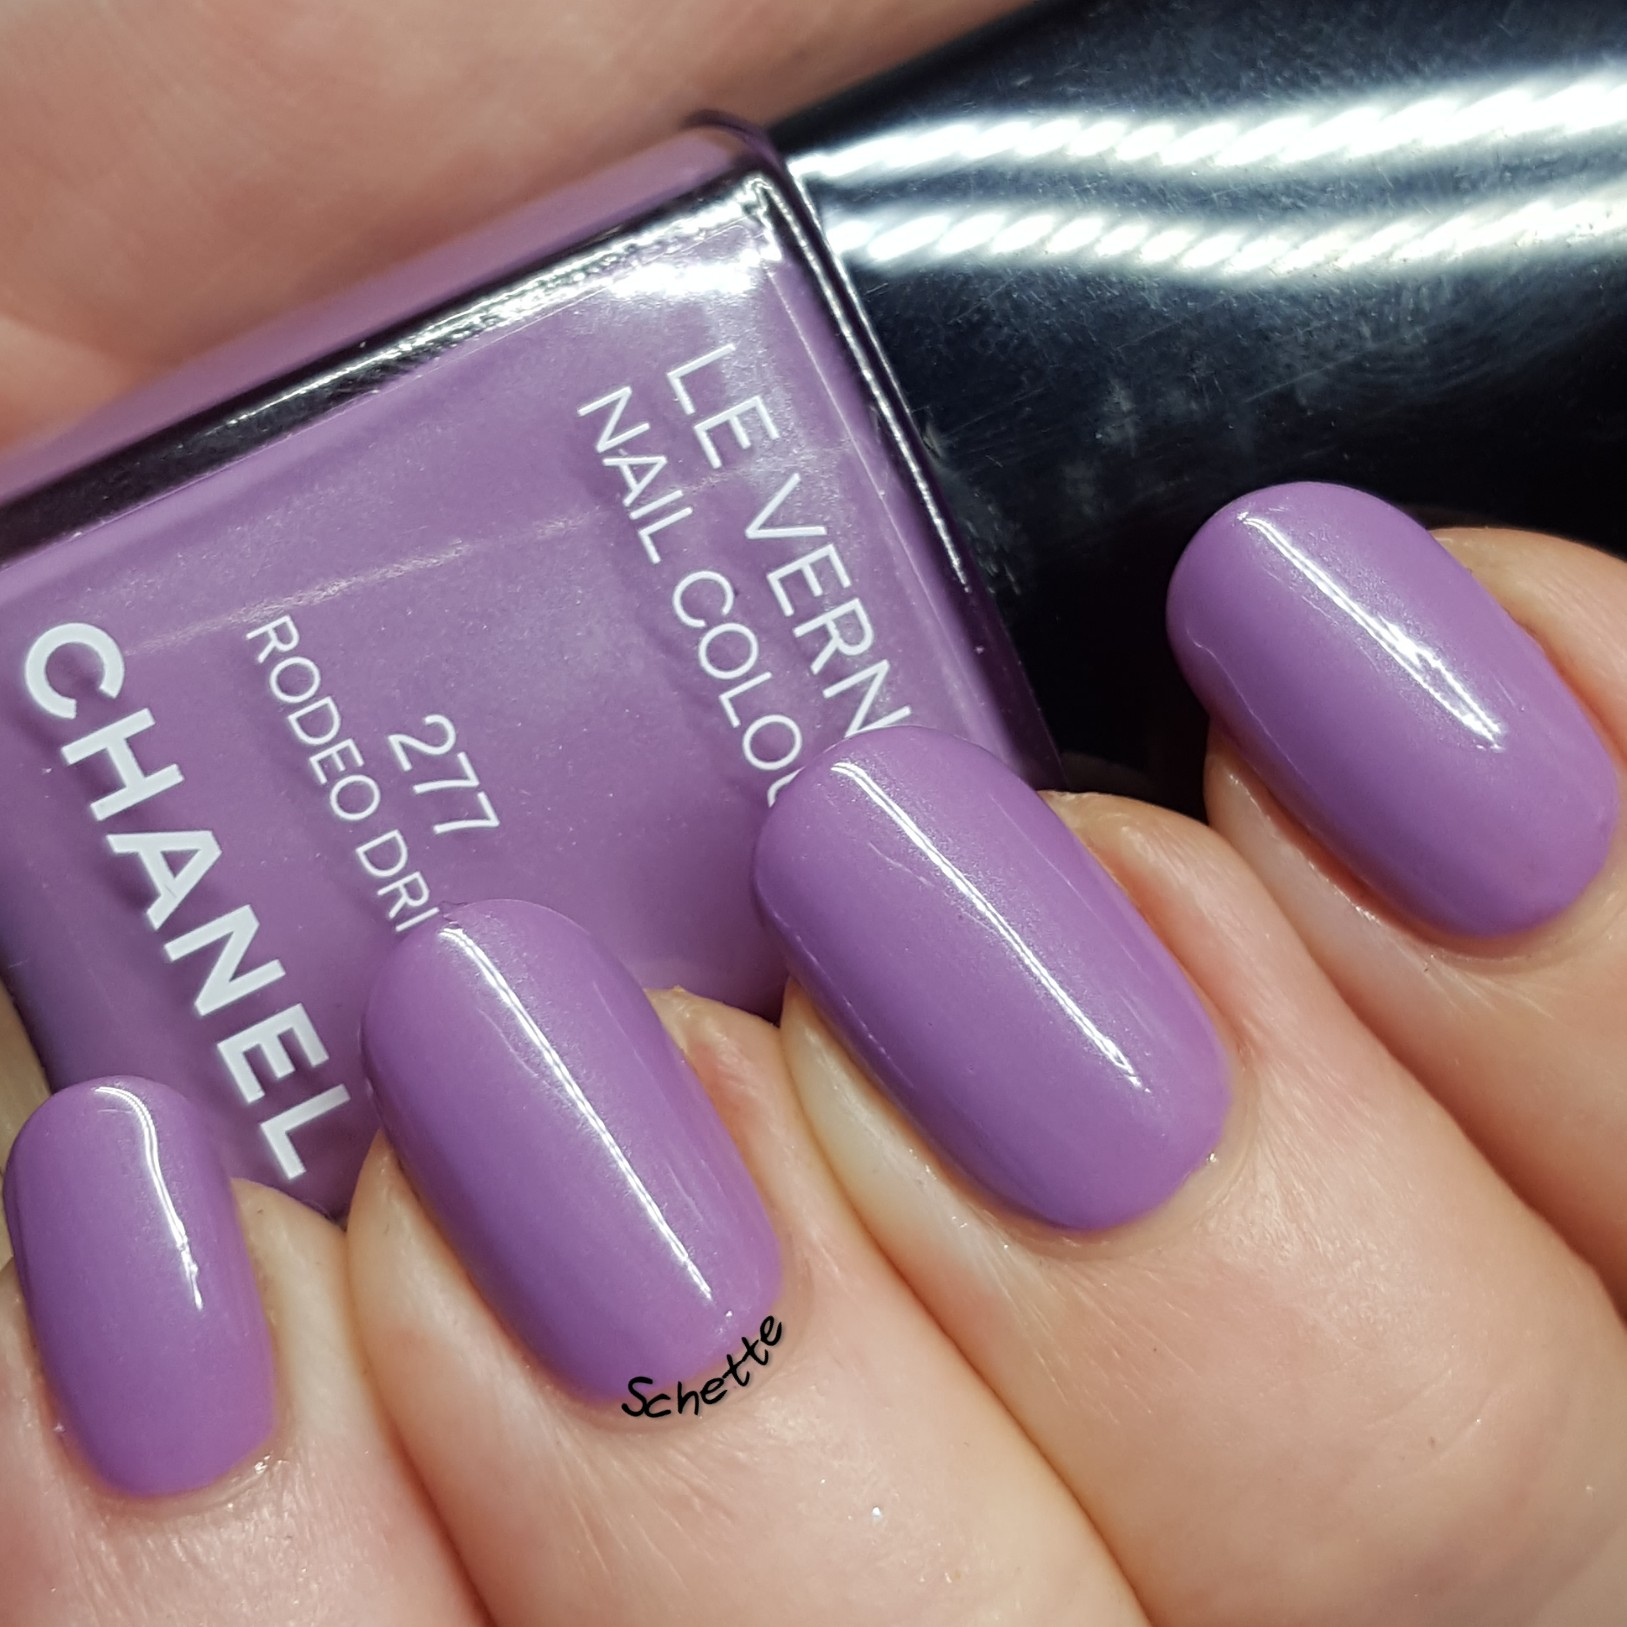 Chanel - Rodeo drive